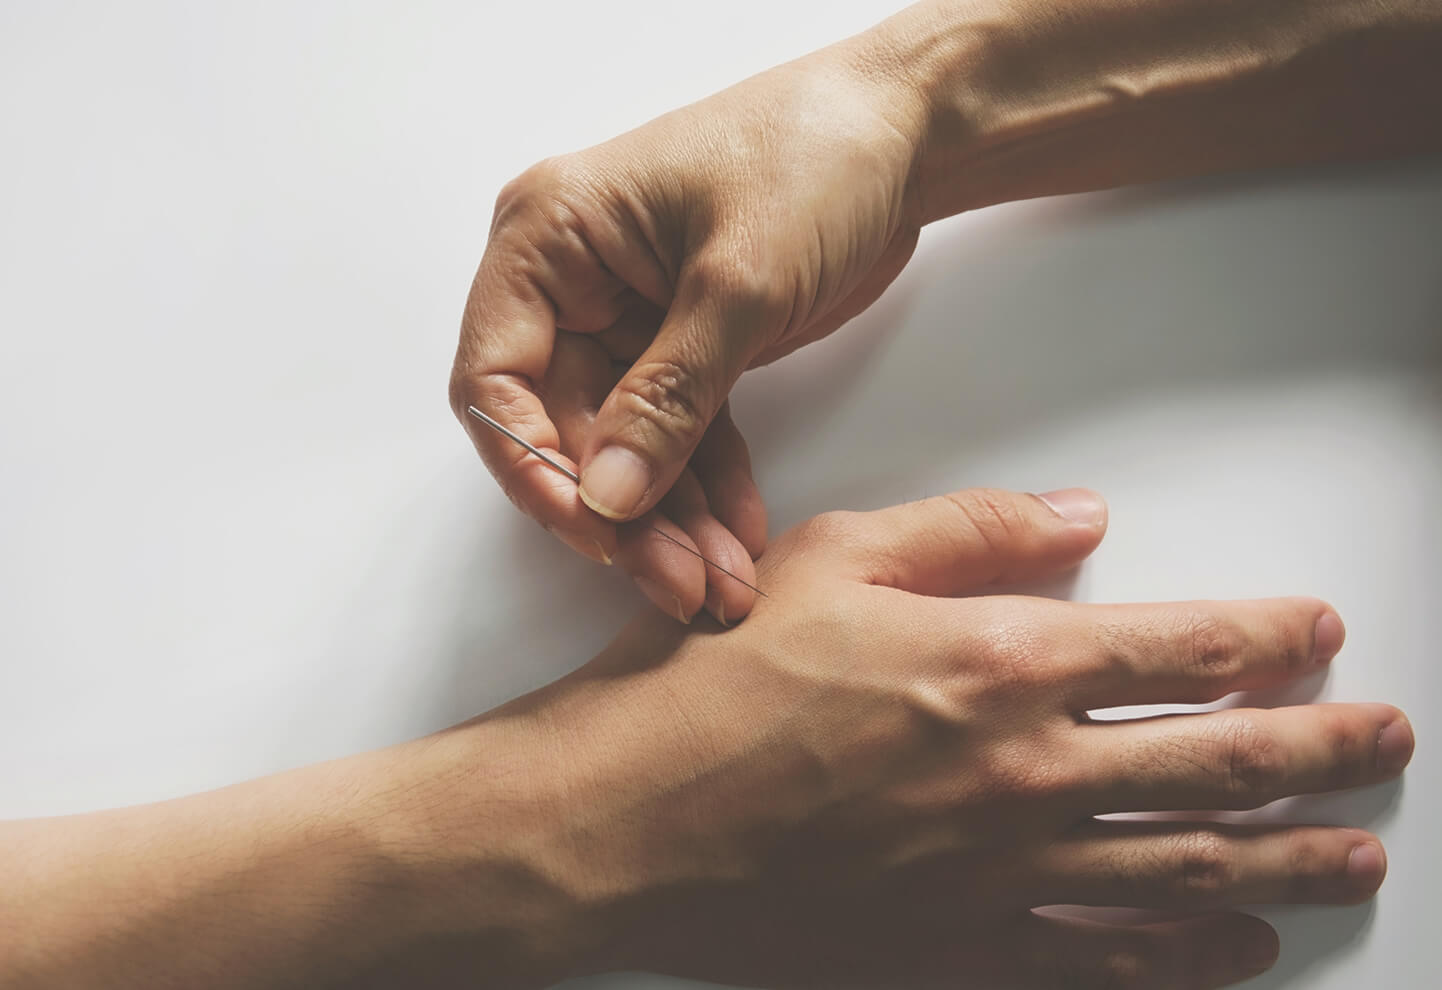 How does acupuncture help treat joint pain? - Healthy ask